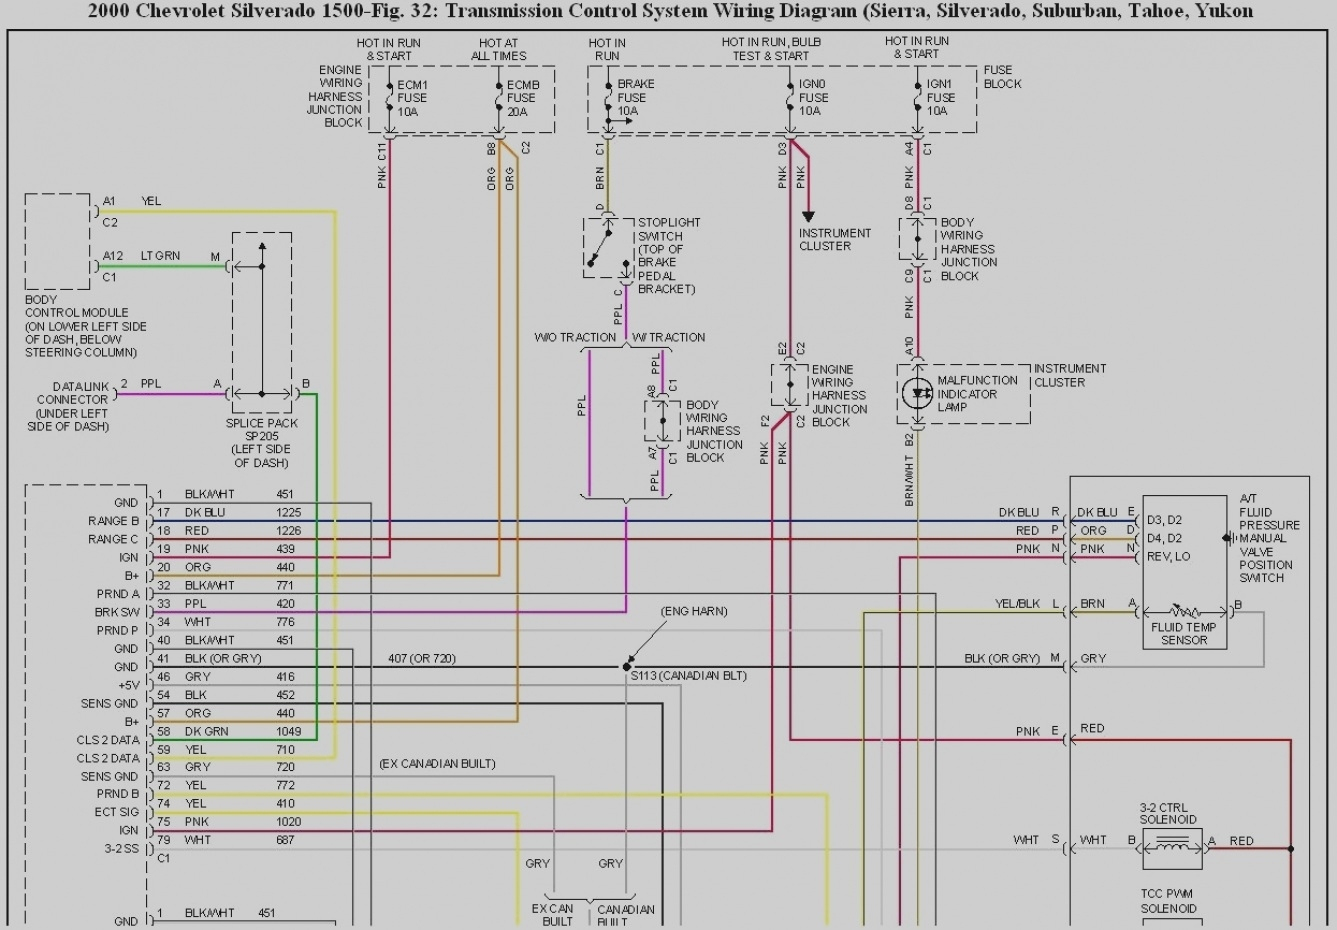 Wabco Valve Wiring Diagram | Best Wiring Library - Wabco Abs Wiring Diagram